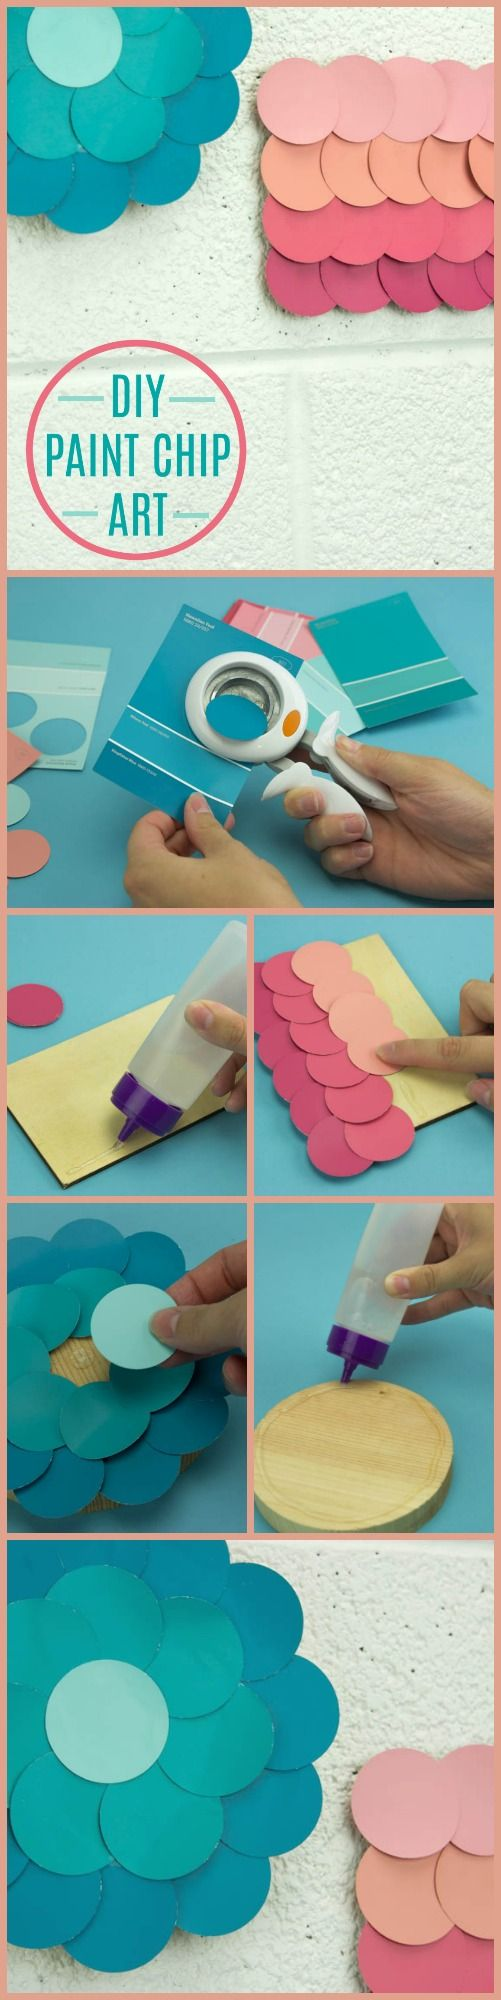 TheseDIY Paint Chip Wall Art ideas are great for your room or dorm and make great gifts for your friends and family.